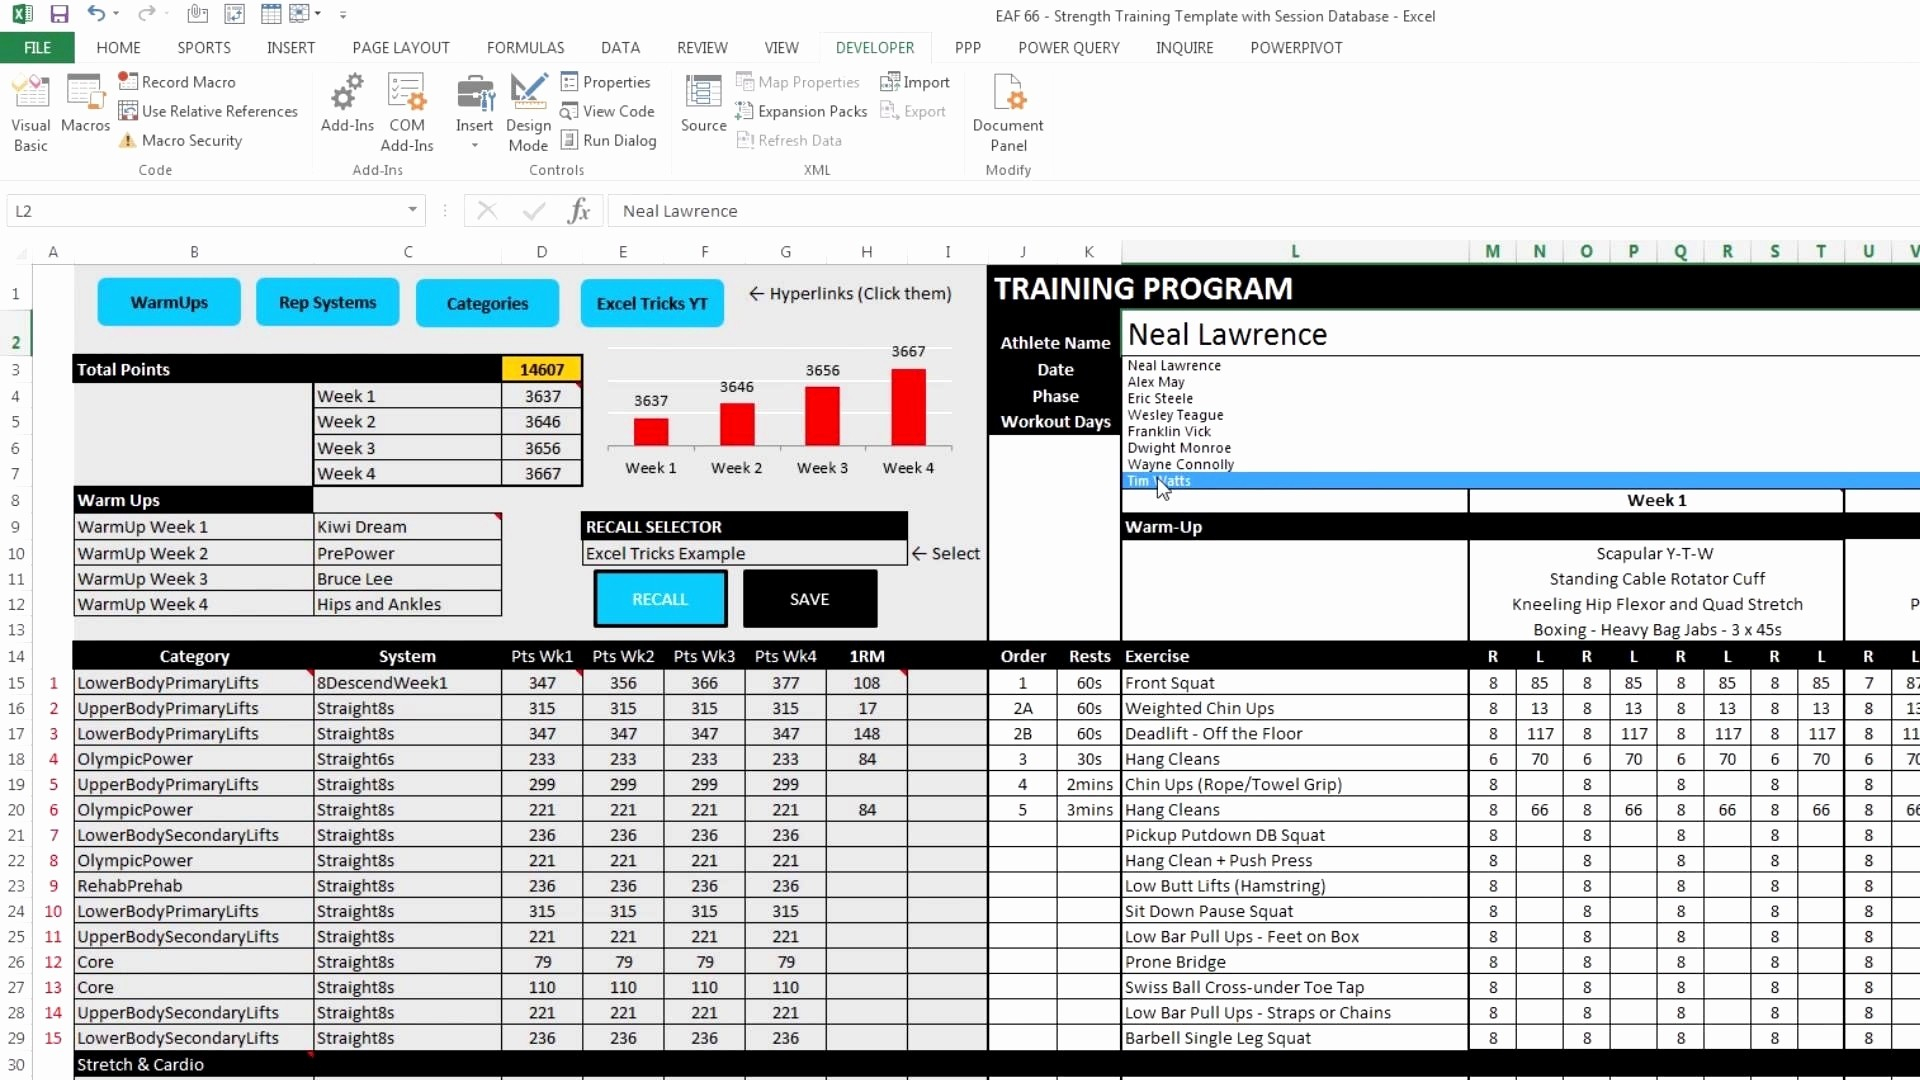 Formblatt 221 Excel Vorlage50 Best Excel Crm Template Software With Excel Crm Templates Free Download